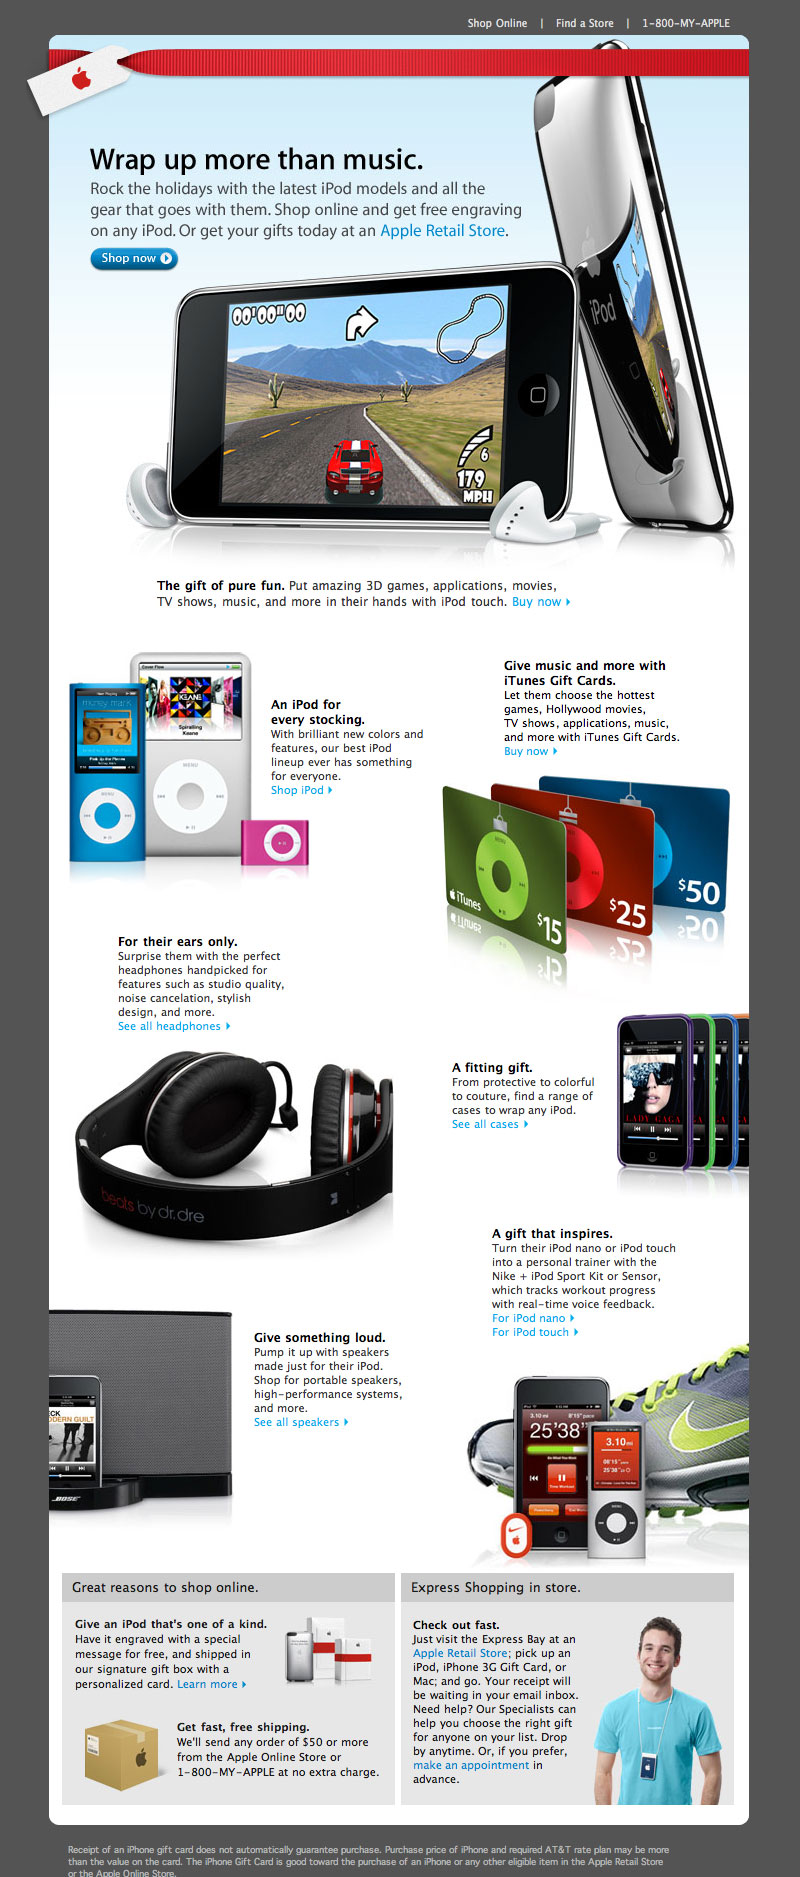 Apple iPod Holiday Email